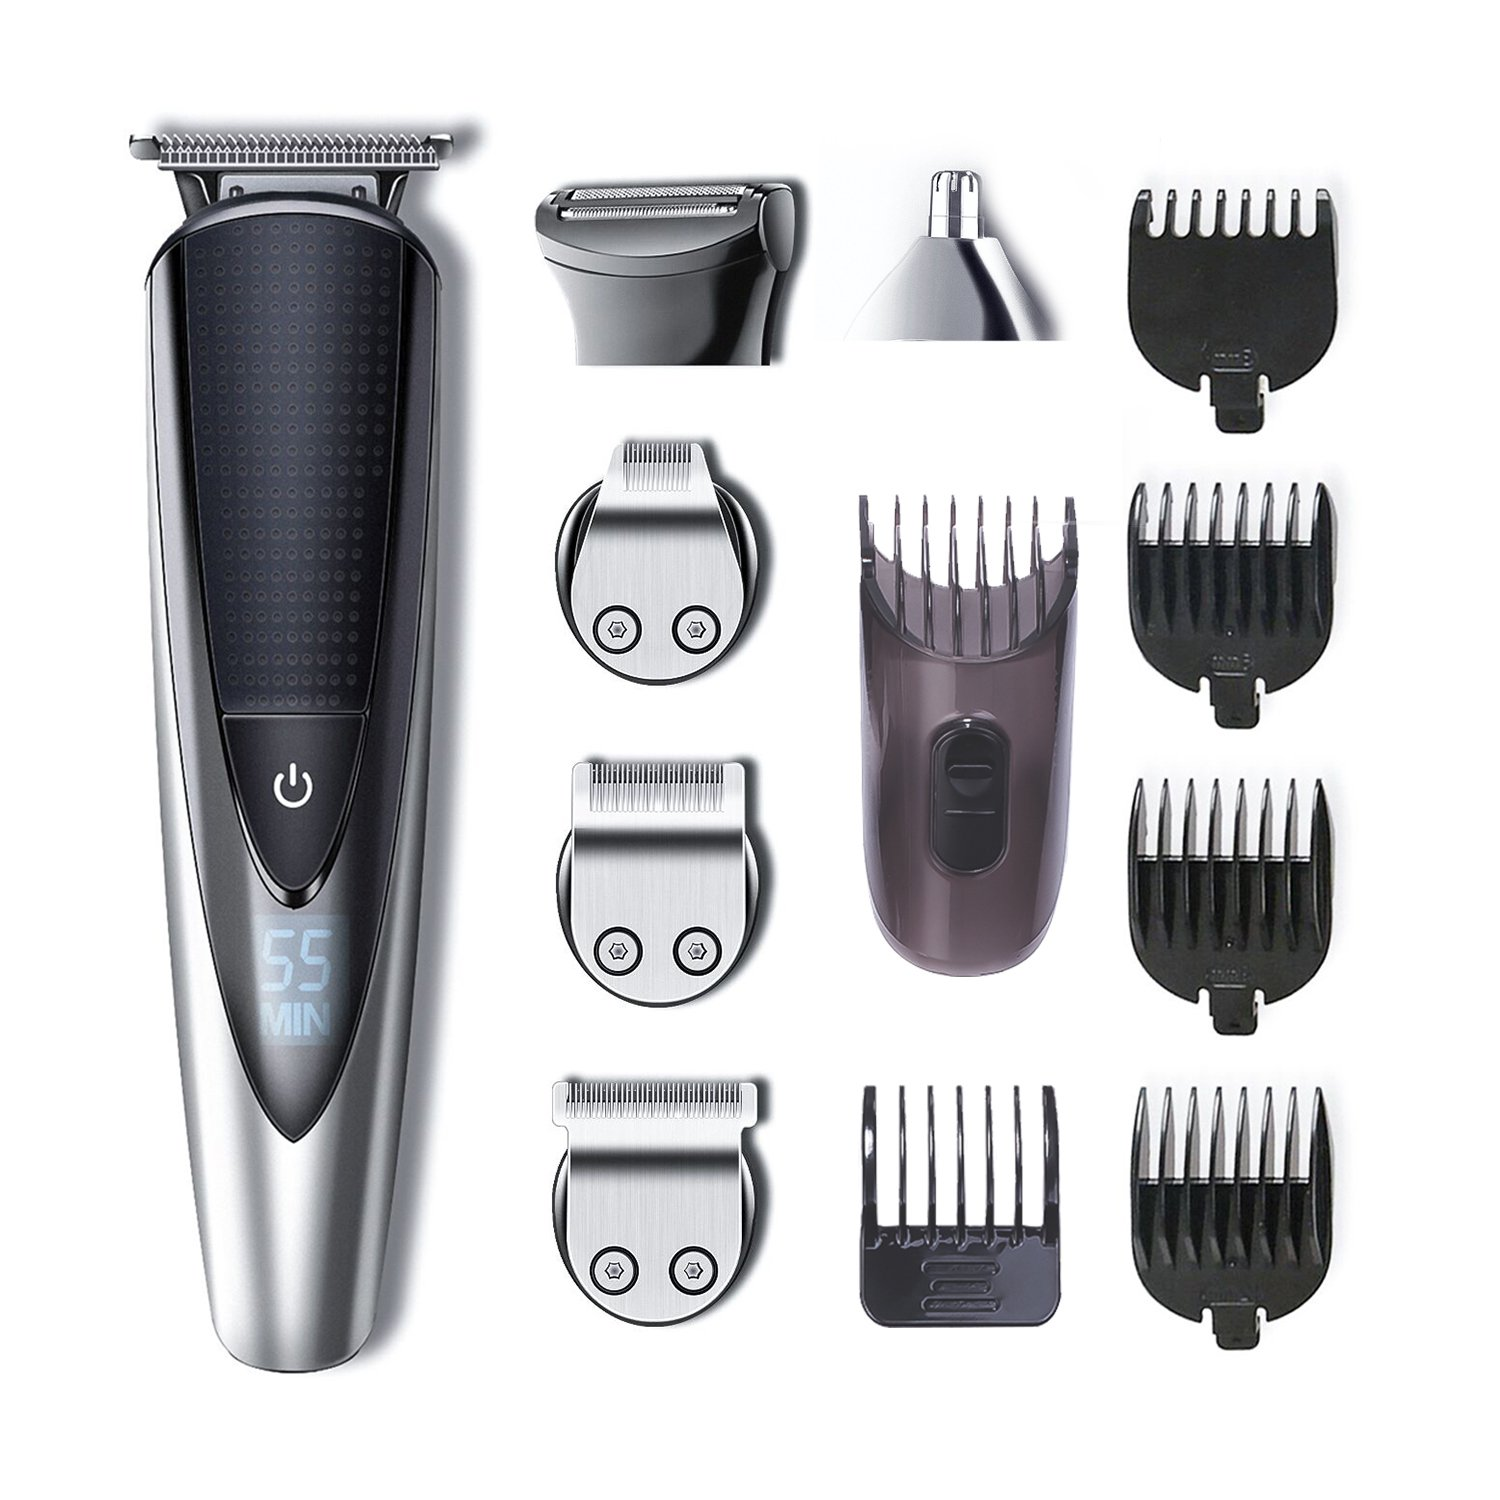 HATTEKER Beard Trimmer Kit For Men Cordless Mustache Trimmer Hair Trimmer Body Groomer Kit Of Nose Hair Trimmer Precision Trimmer Waterproof USB Rechargeable 5 In 1